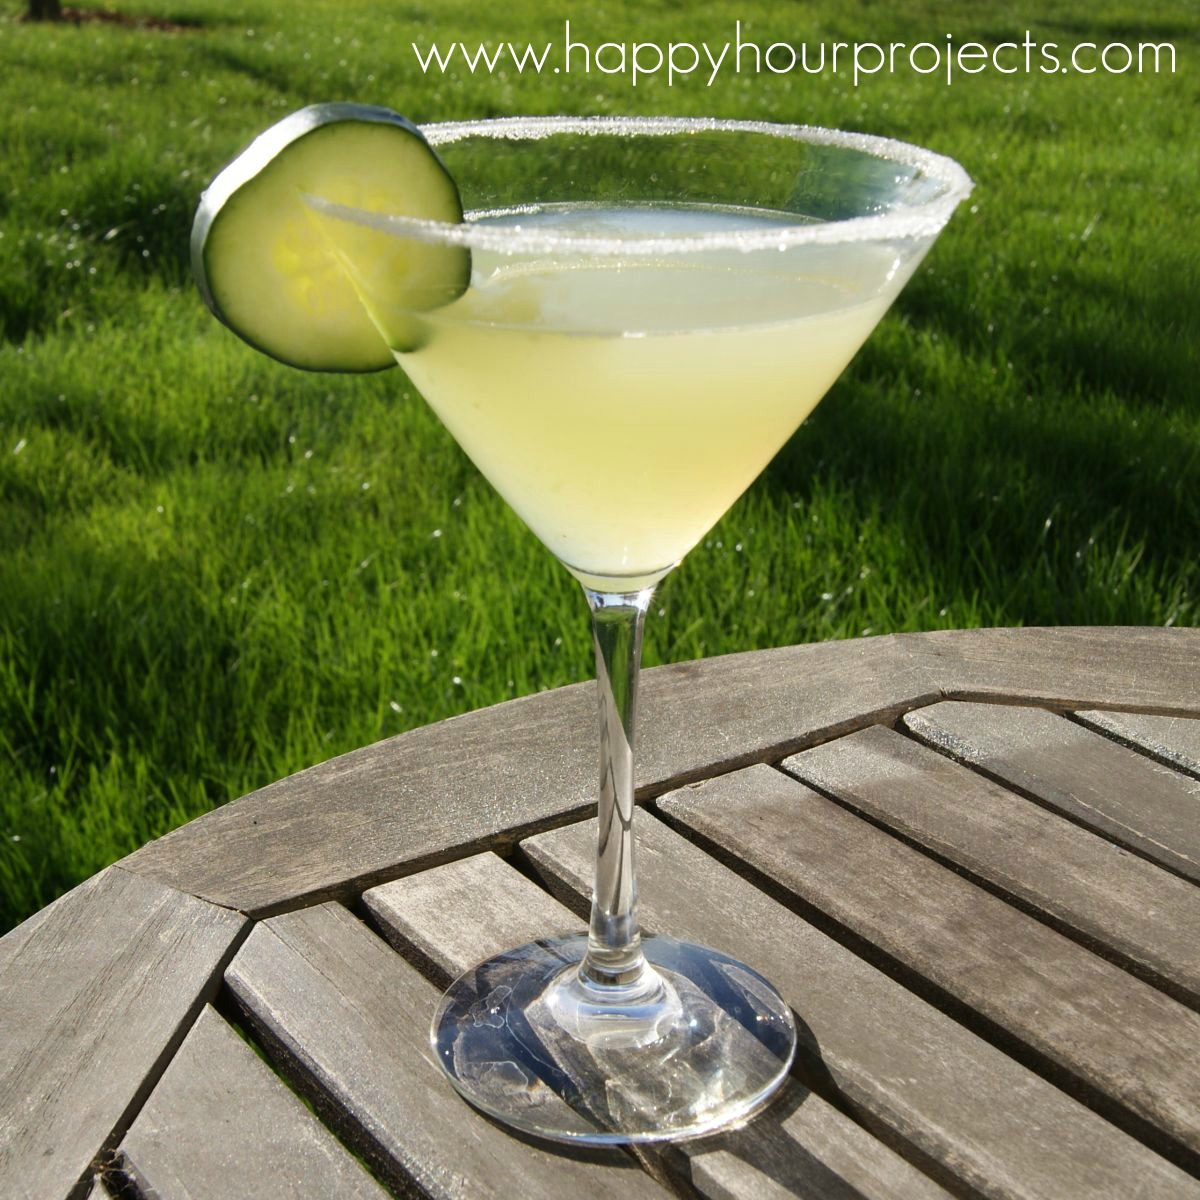 Cucumber Martini at www.happyhourprojects.com